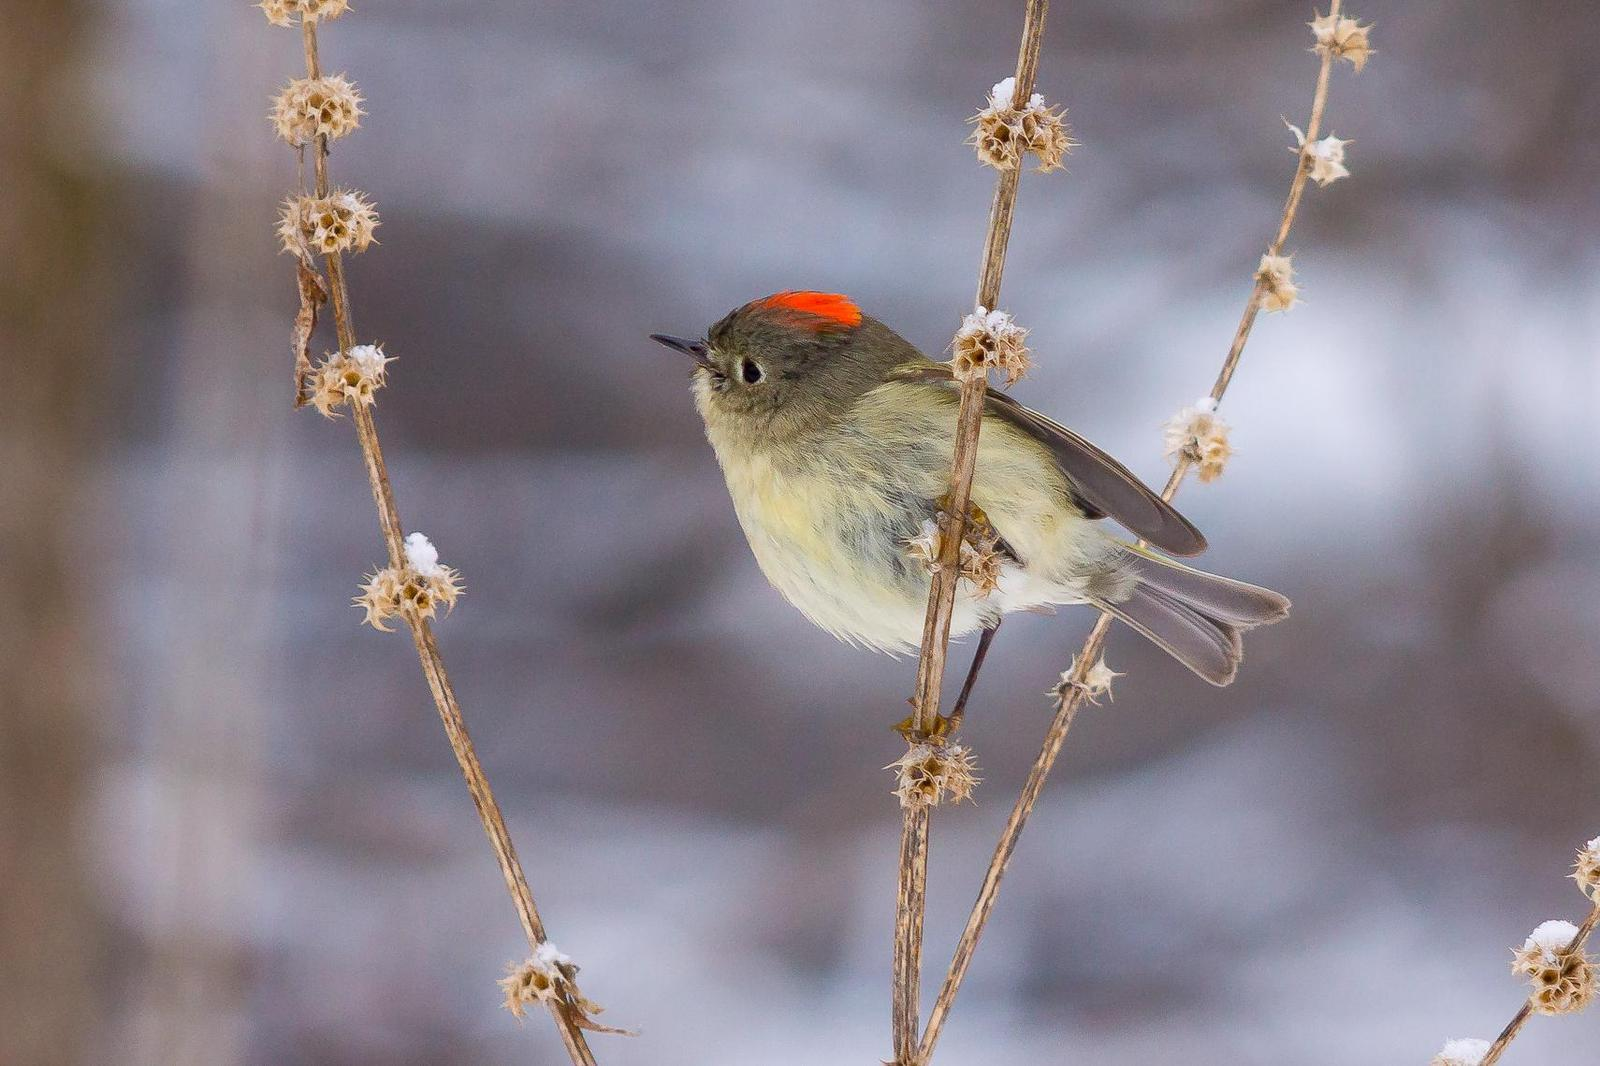 Ruby-crowned Kinglet Photo by Gerald Hoekstra